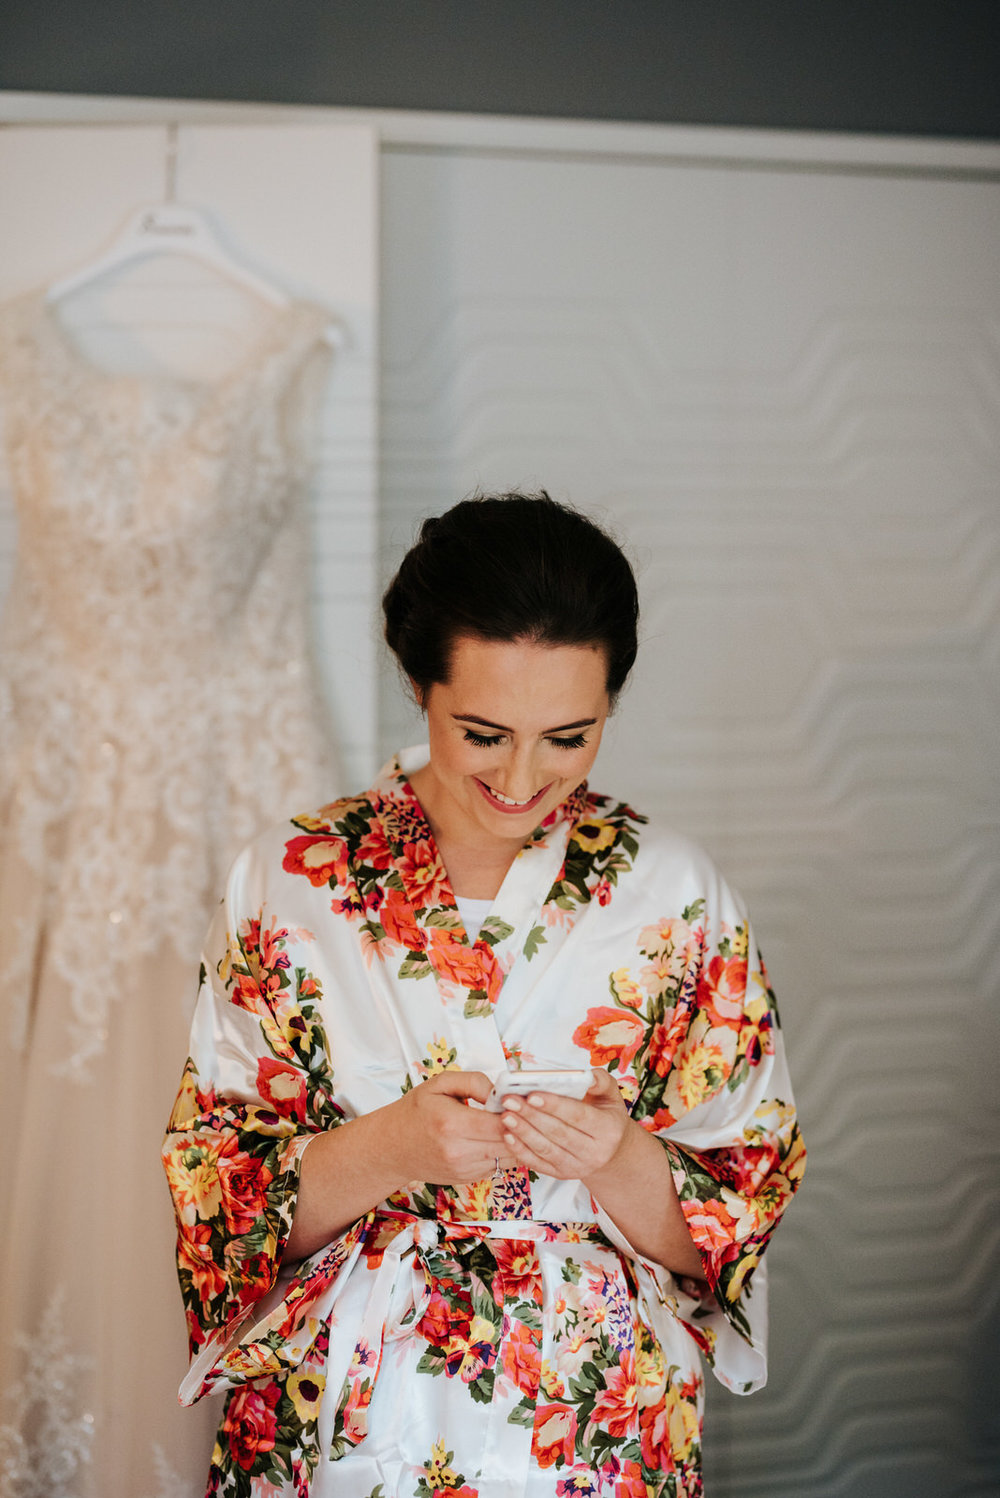 Bride looks and smiles at phone as she reads a text message